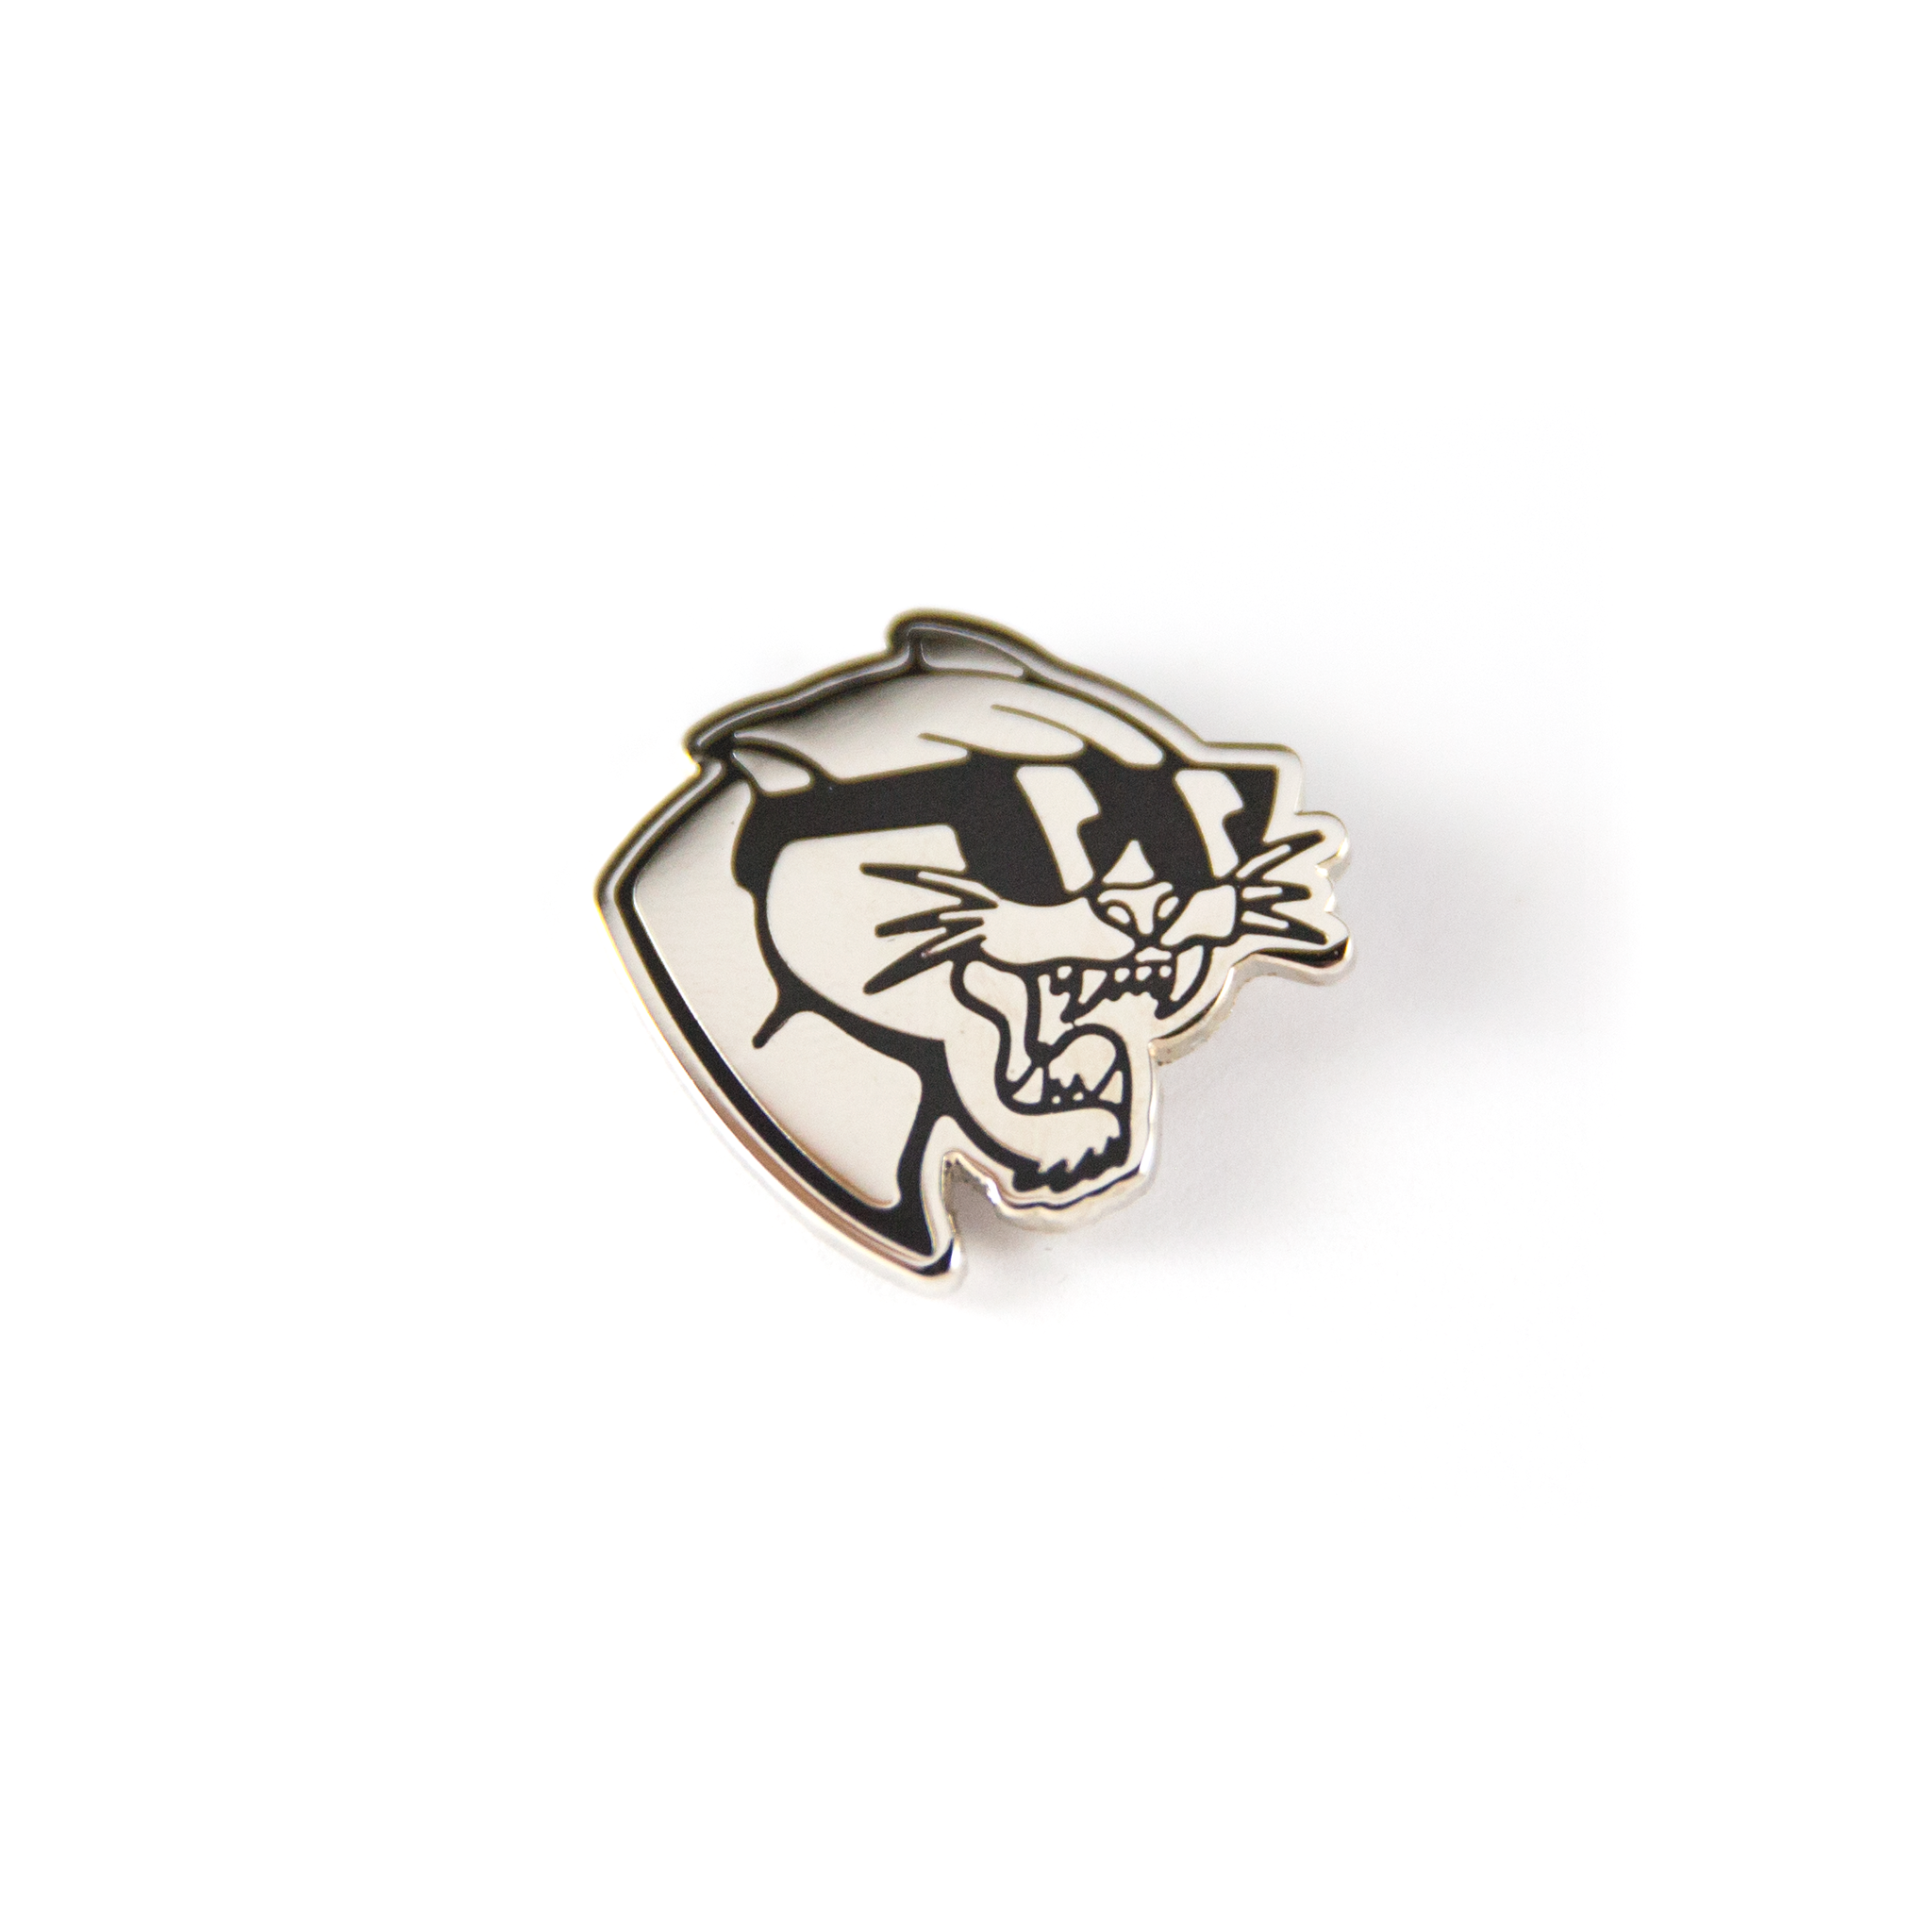 Cool Cat Pin: Joe Flores x Reppin